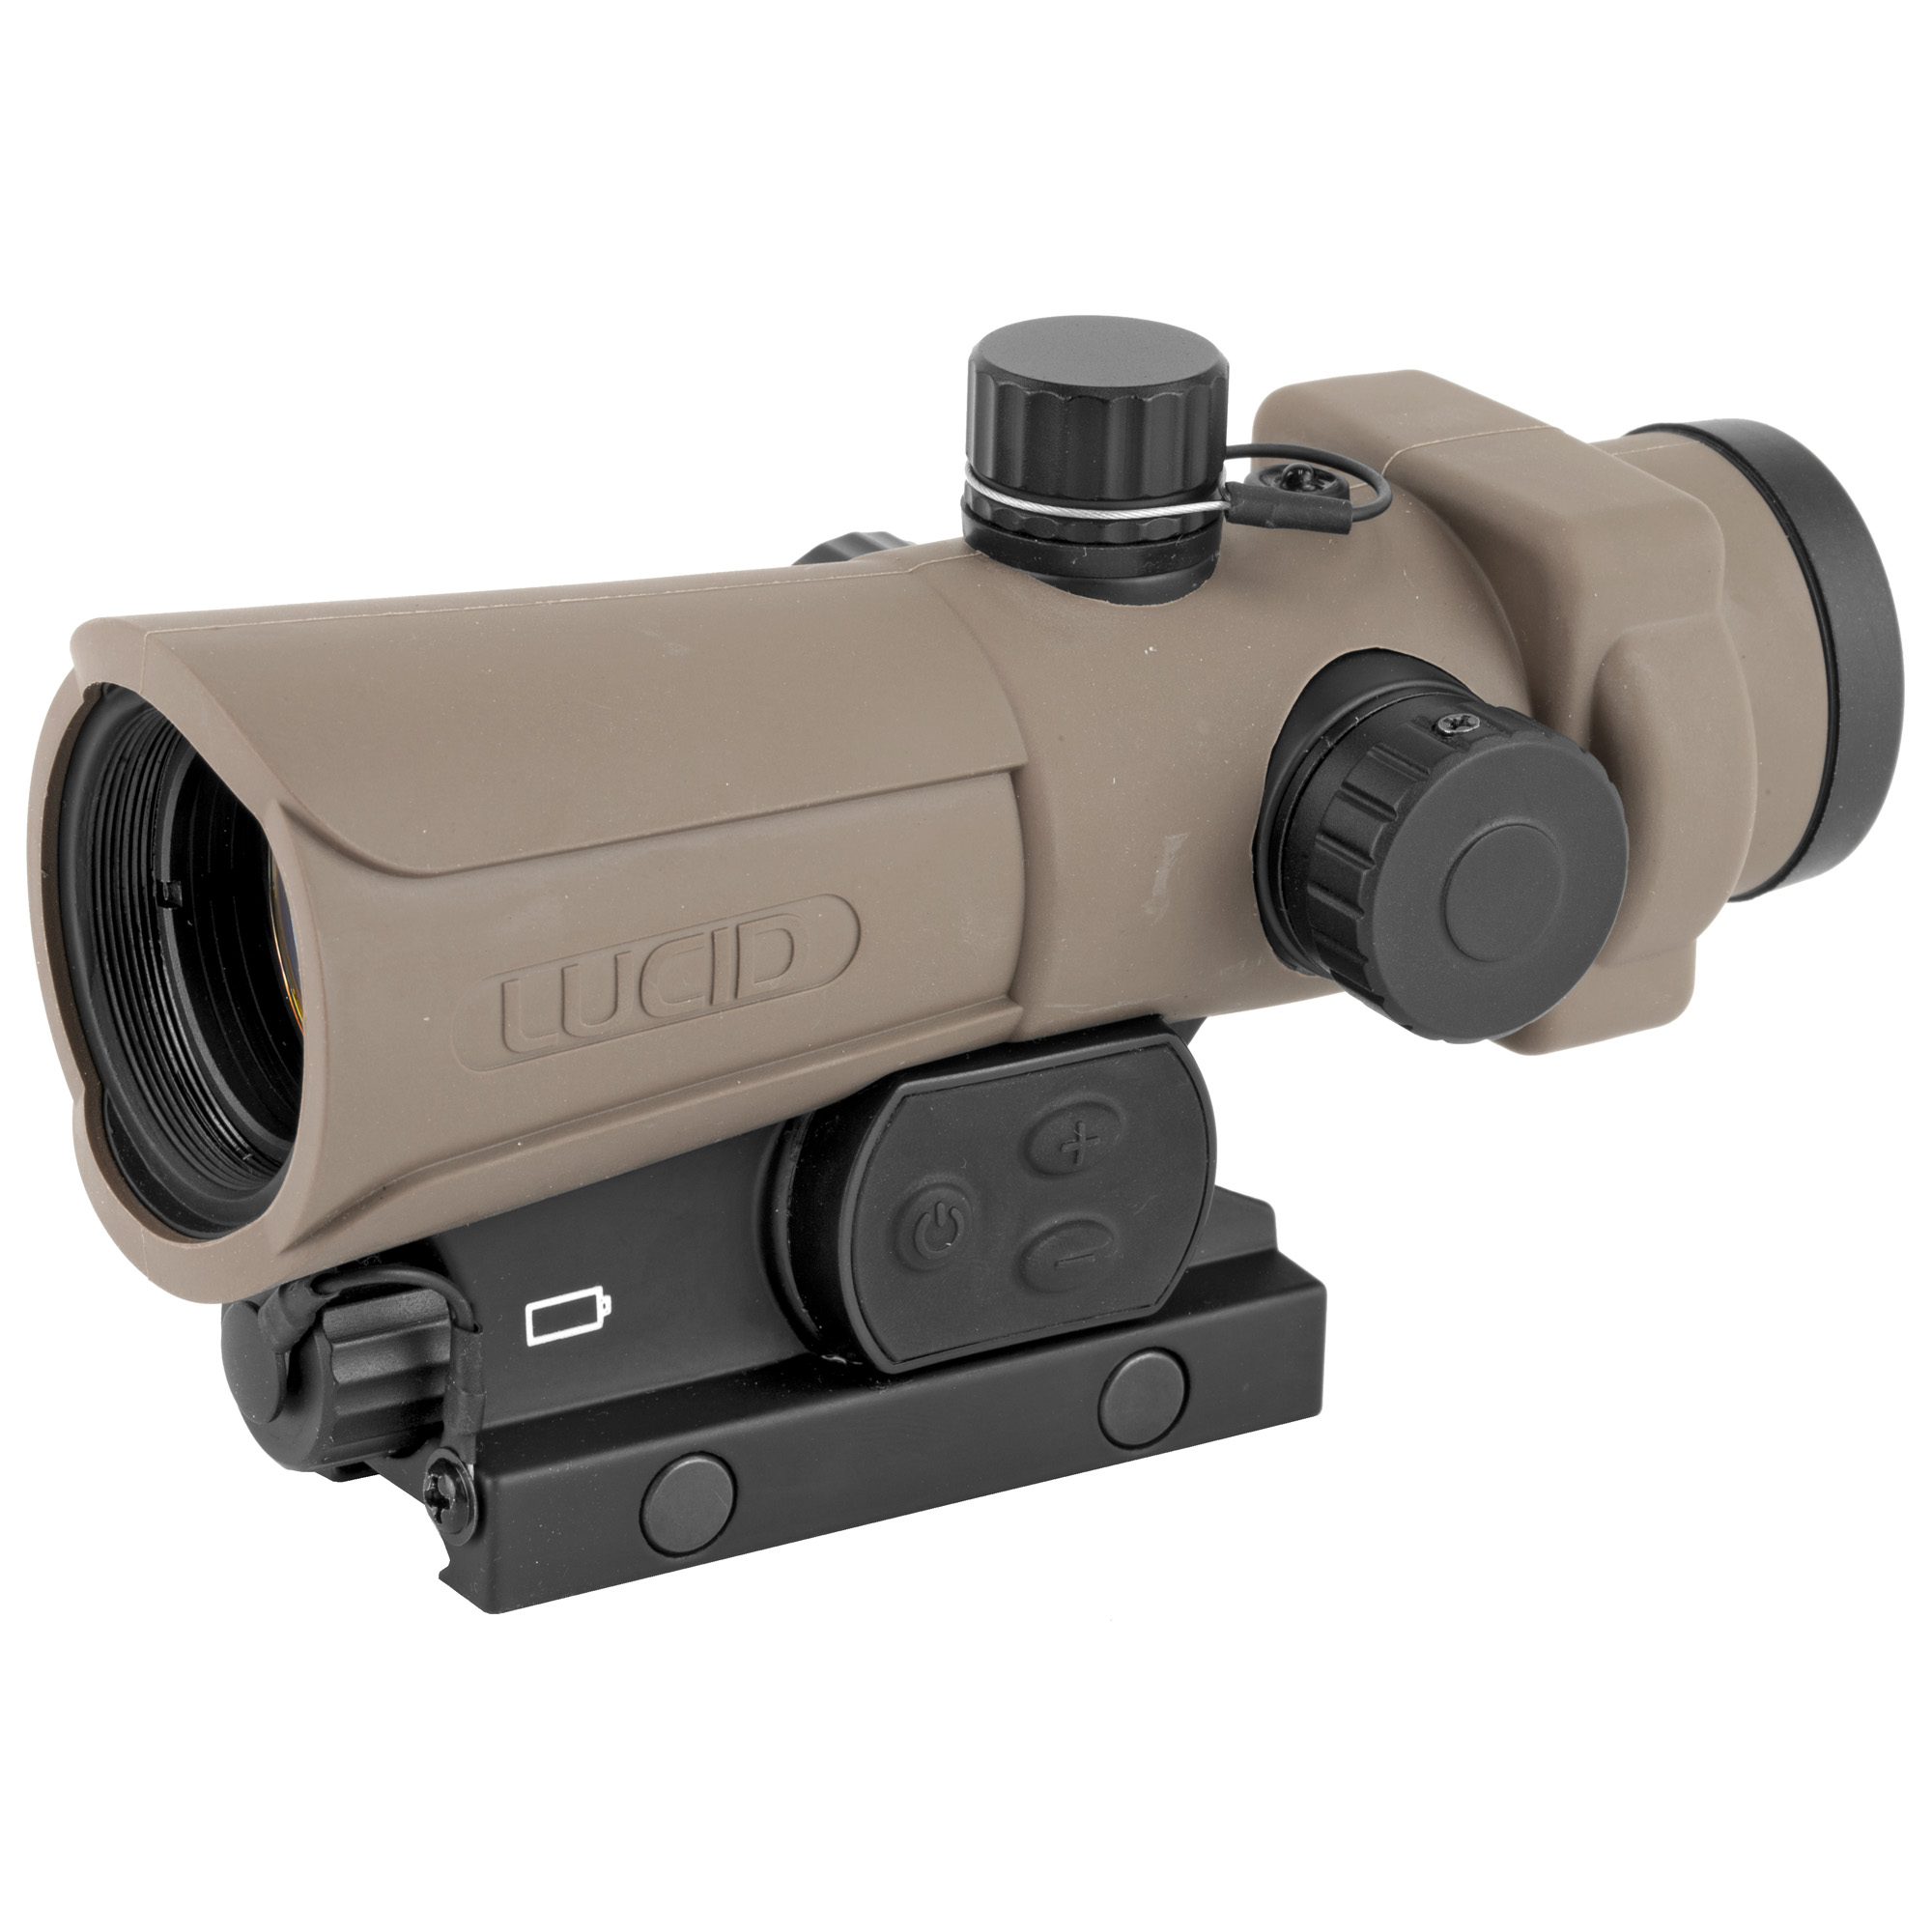 "As with the original version of the HD7"" you don't have to compromise with the GEN III HD7. At LUCID OPTICS they recognize that no two shooting situations are ever the same"" and feel your optic should be able to provide functional feature benefits to assist in most situations. The HD7 has been designed from the ground up to be a strong"" reliable optic that offers the most in operator selectable features and benefits that exceed the market standards at a price that is friendly to the wallet. The HD7 is a solid alternative to other much higher priced optics on the market today. Give the HD7 an honest look and we think you will agree."